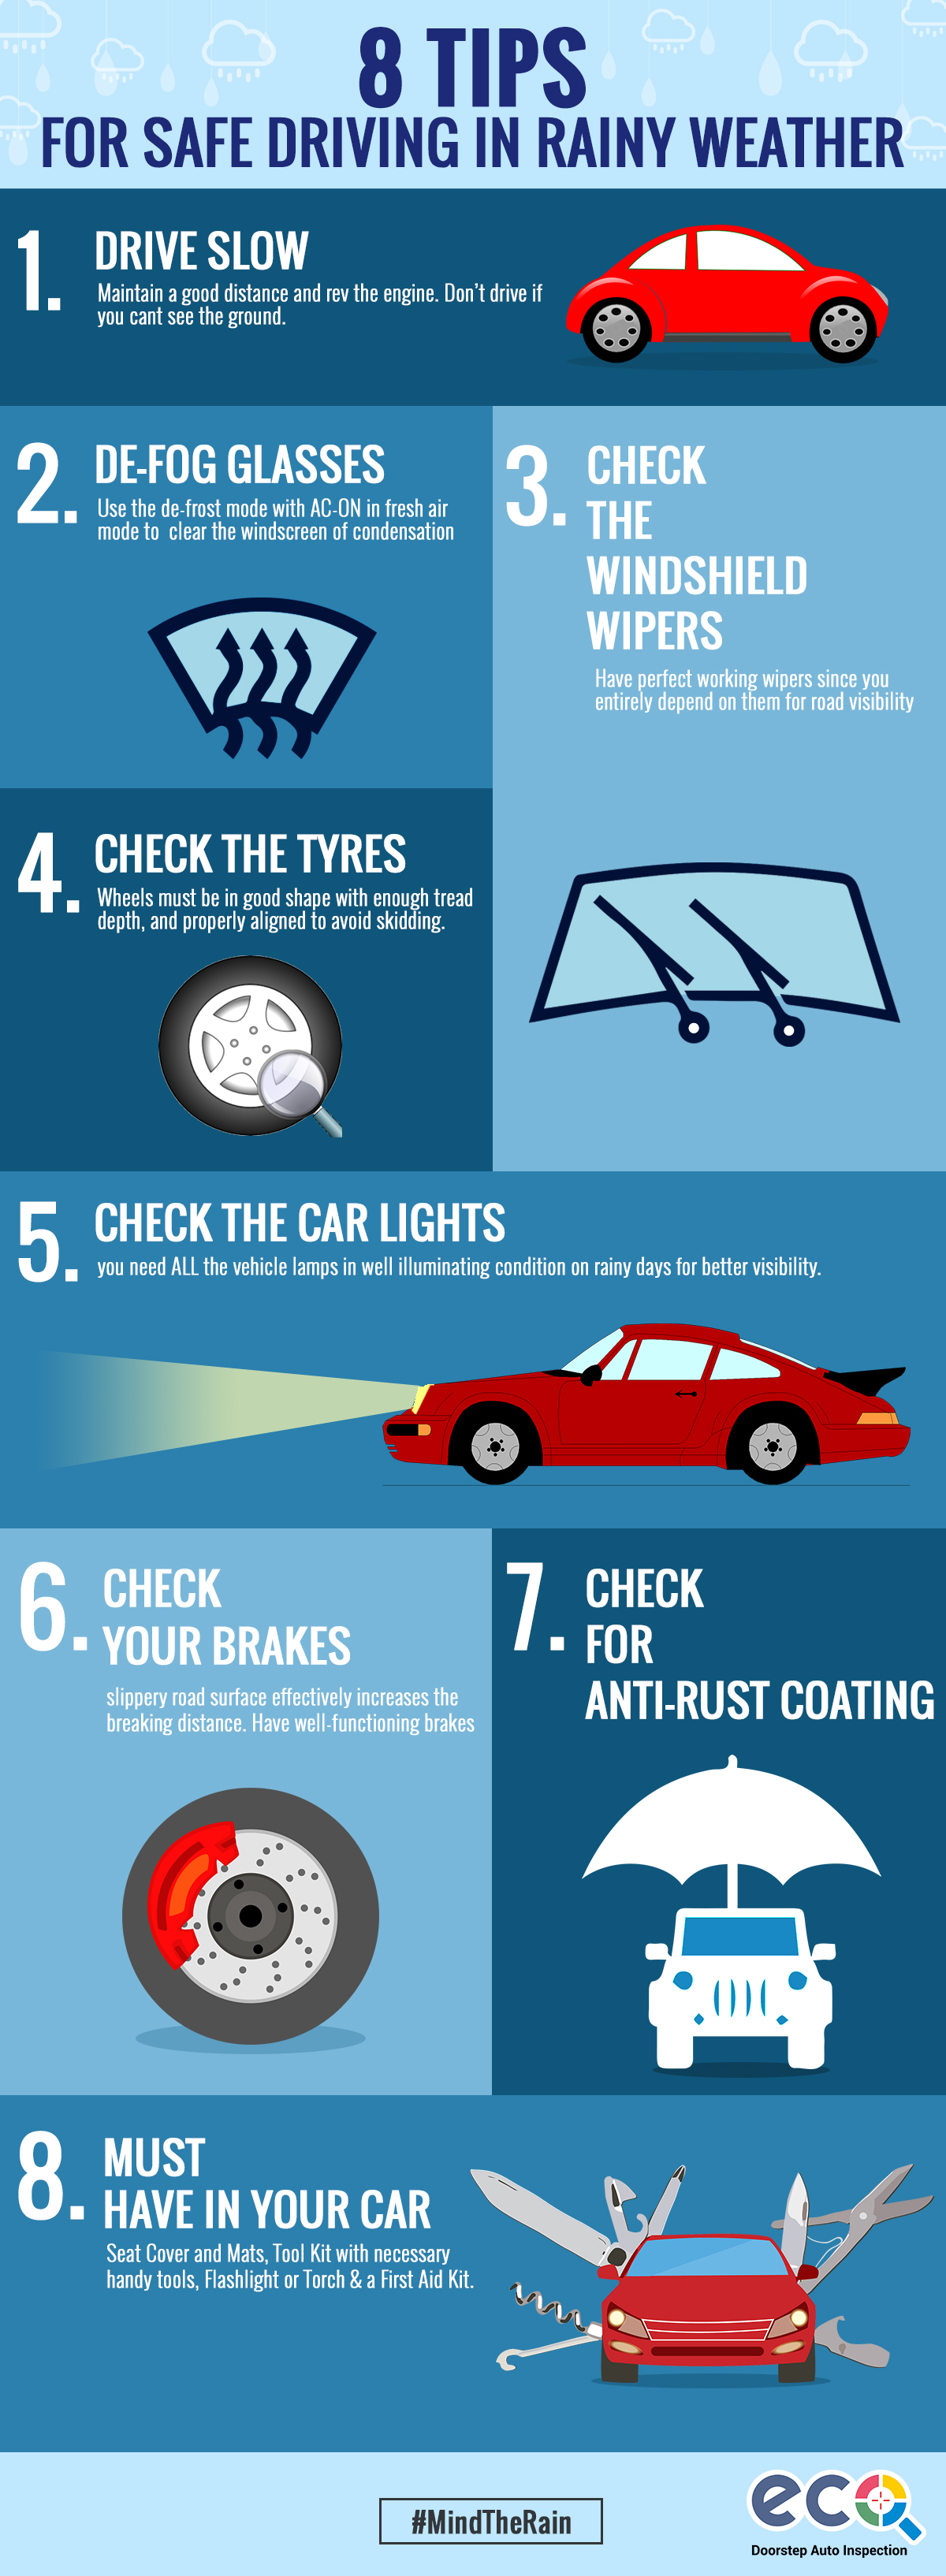 Tips for Safe Driving in Rainy Weather